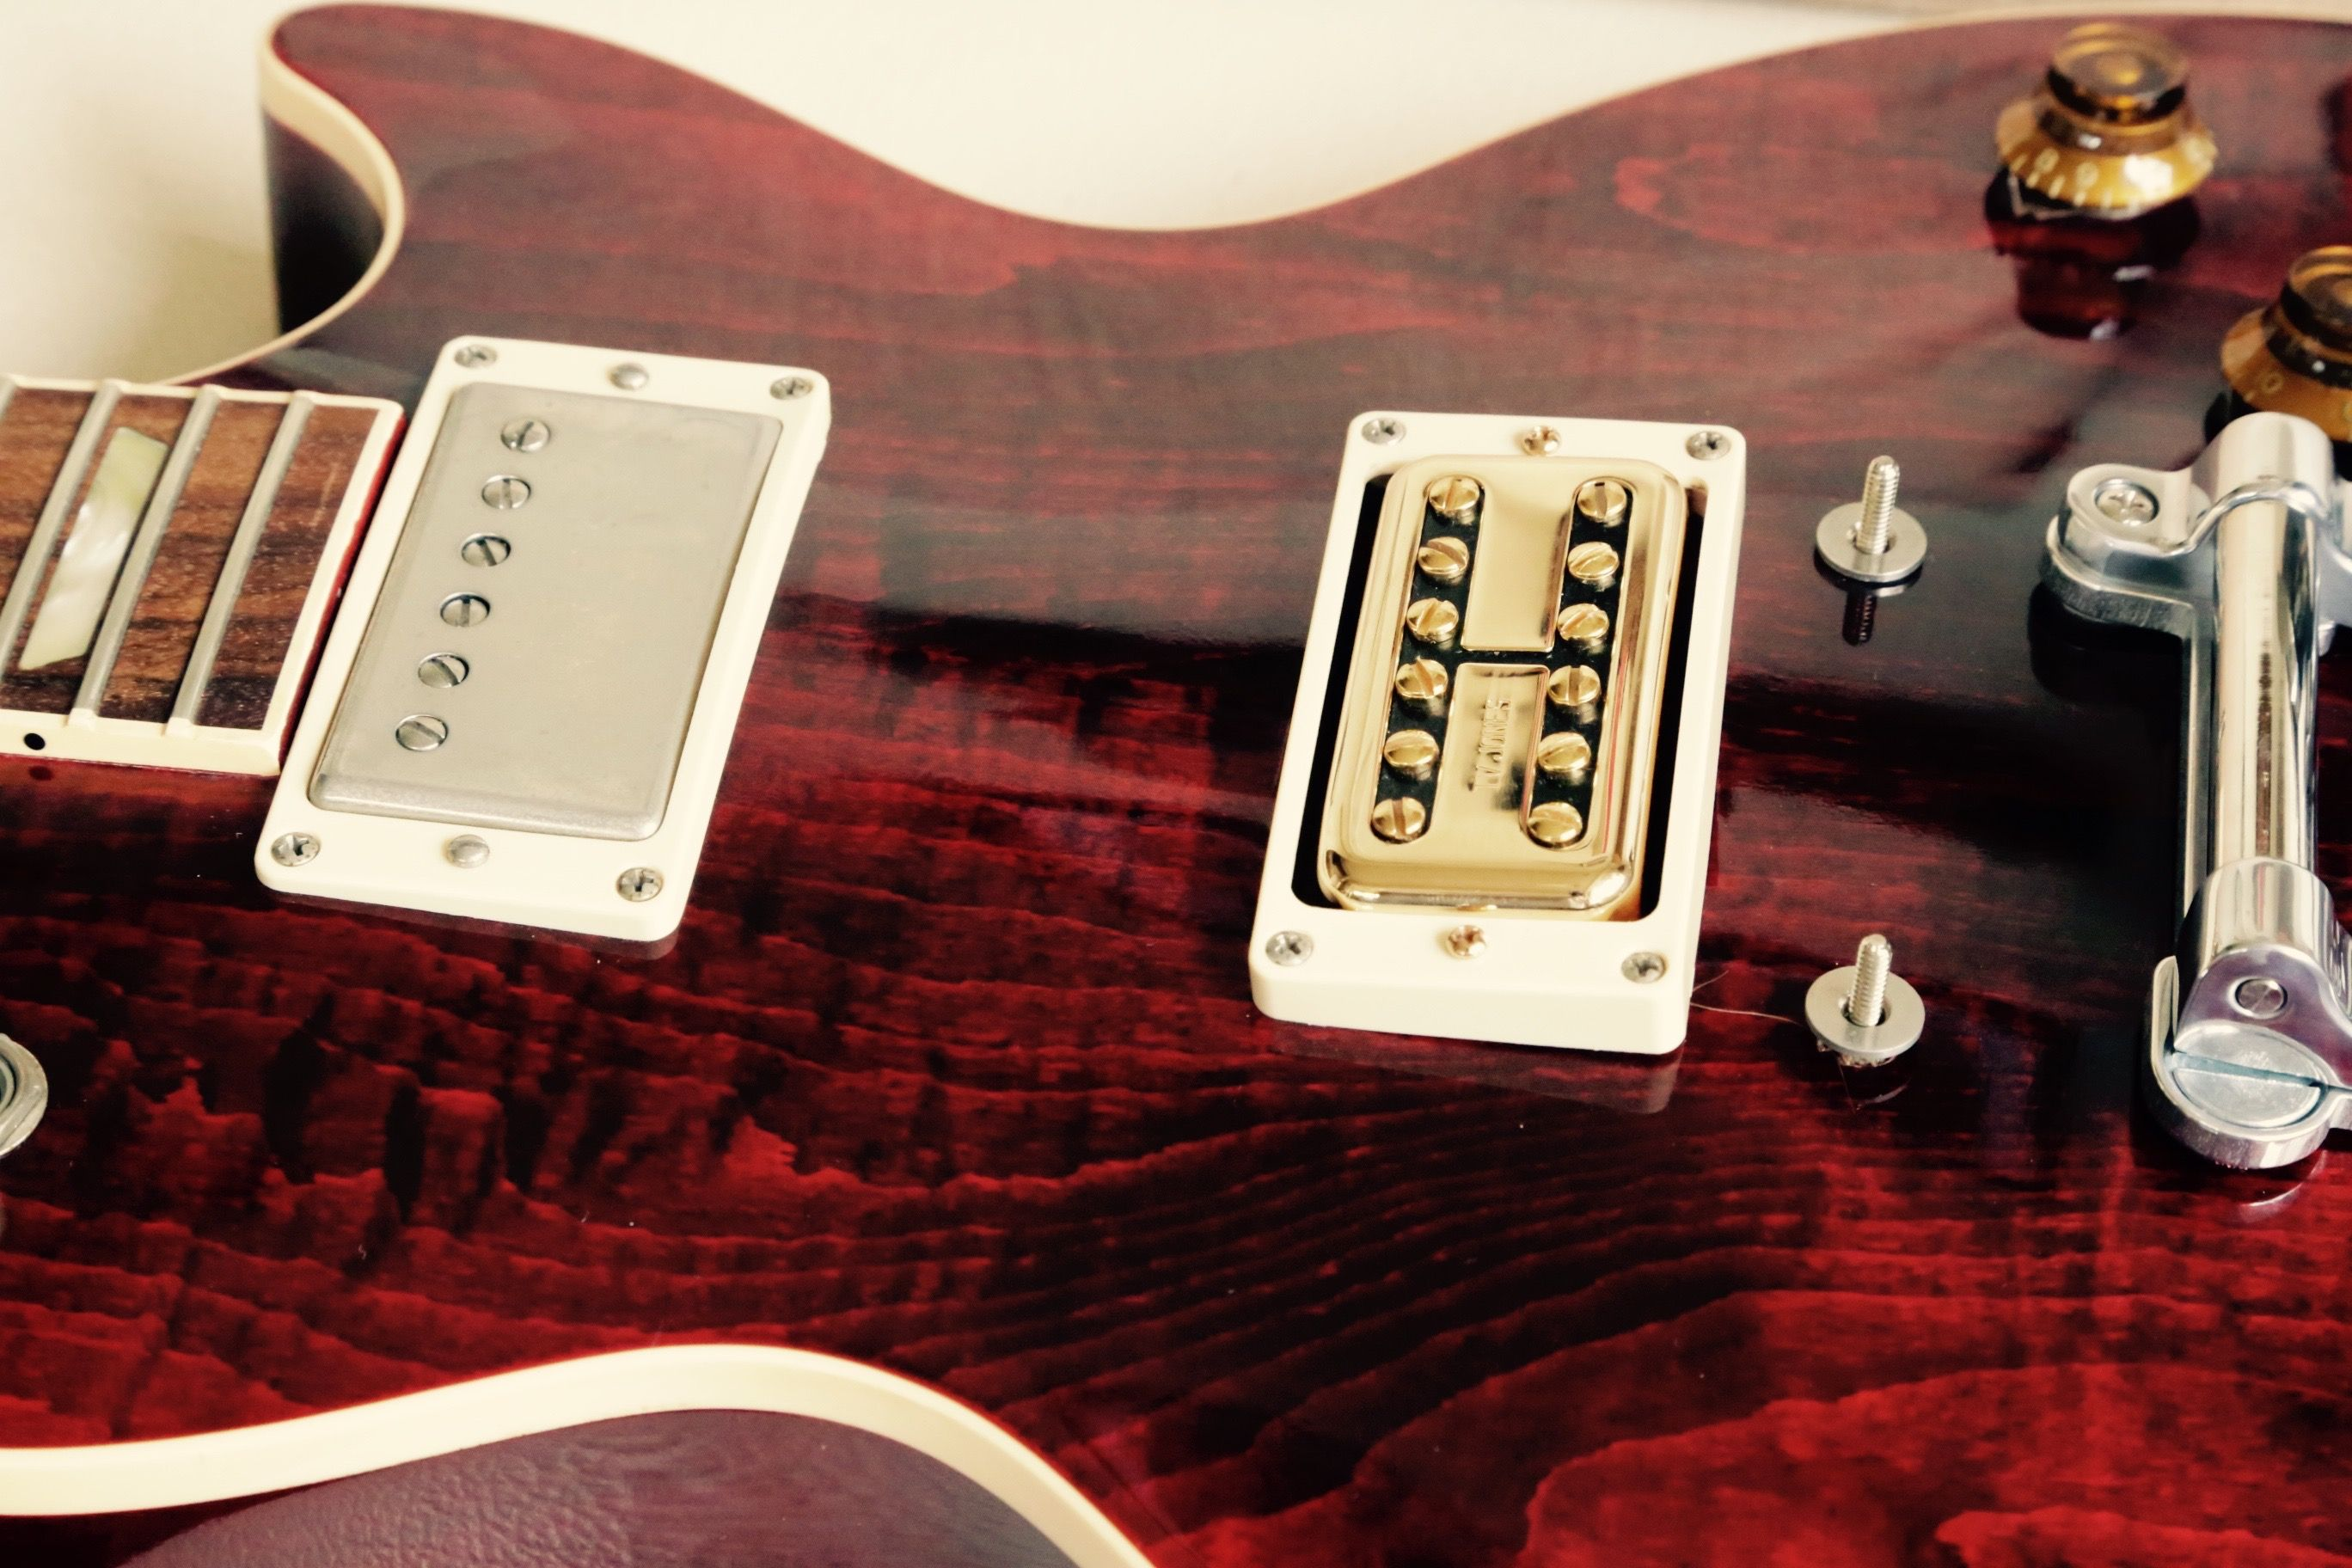 gibson les paul tv jones tv classic english mount guitars gibson les paul tv jones tv classic english mount